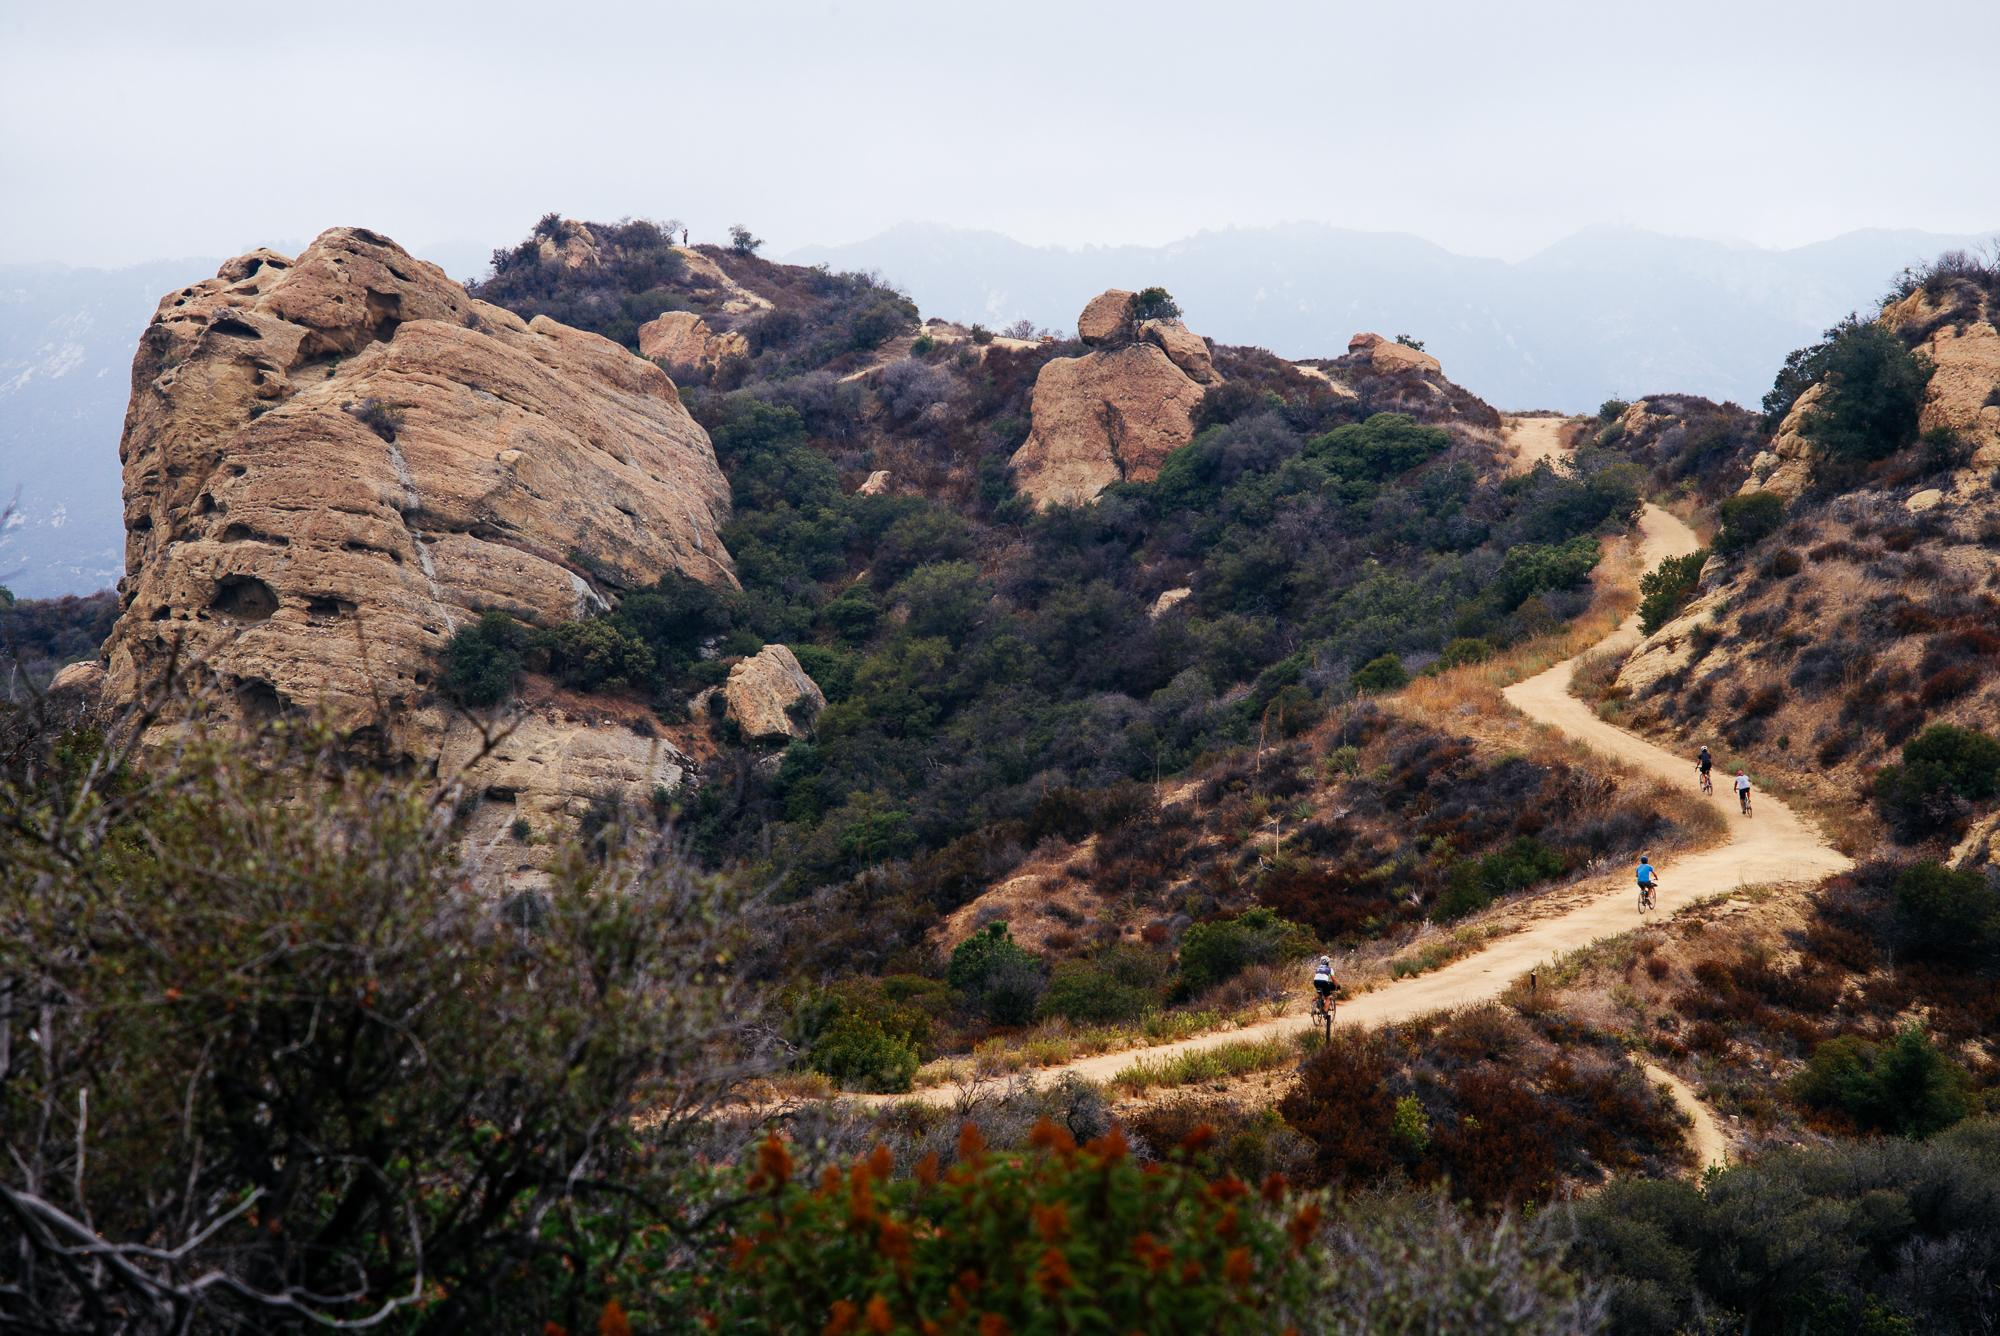 Up and around to Eagle Rock